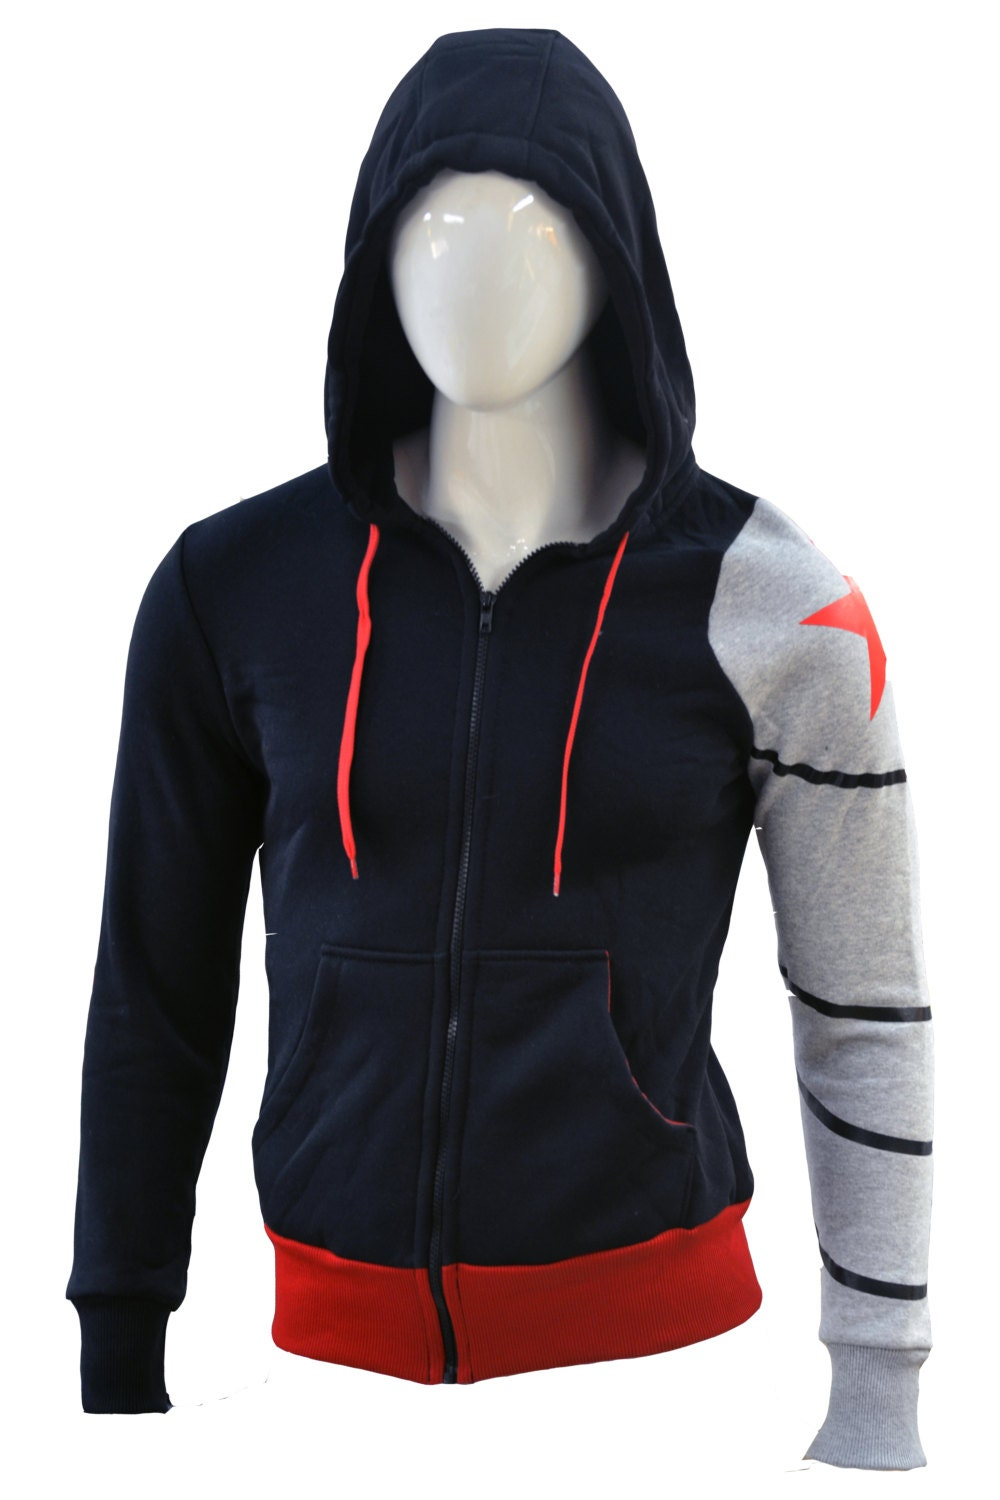 Hoodie Winter soldier by WildThingsShop on Etsy